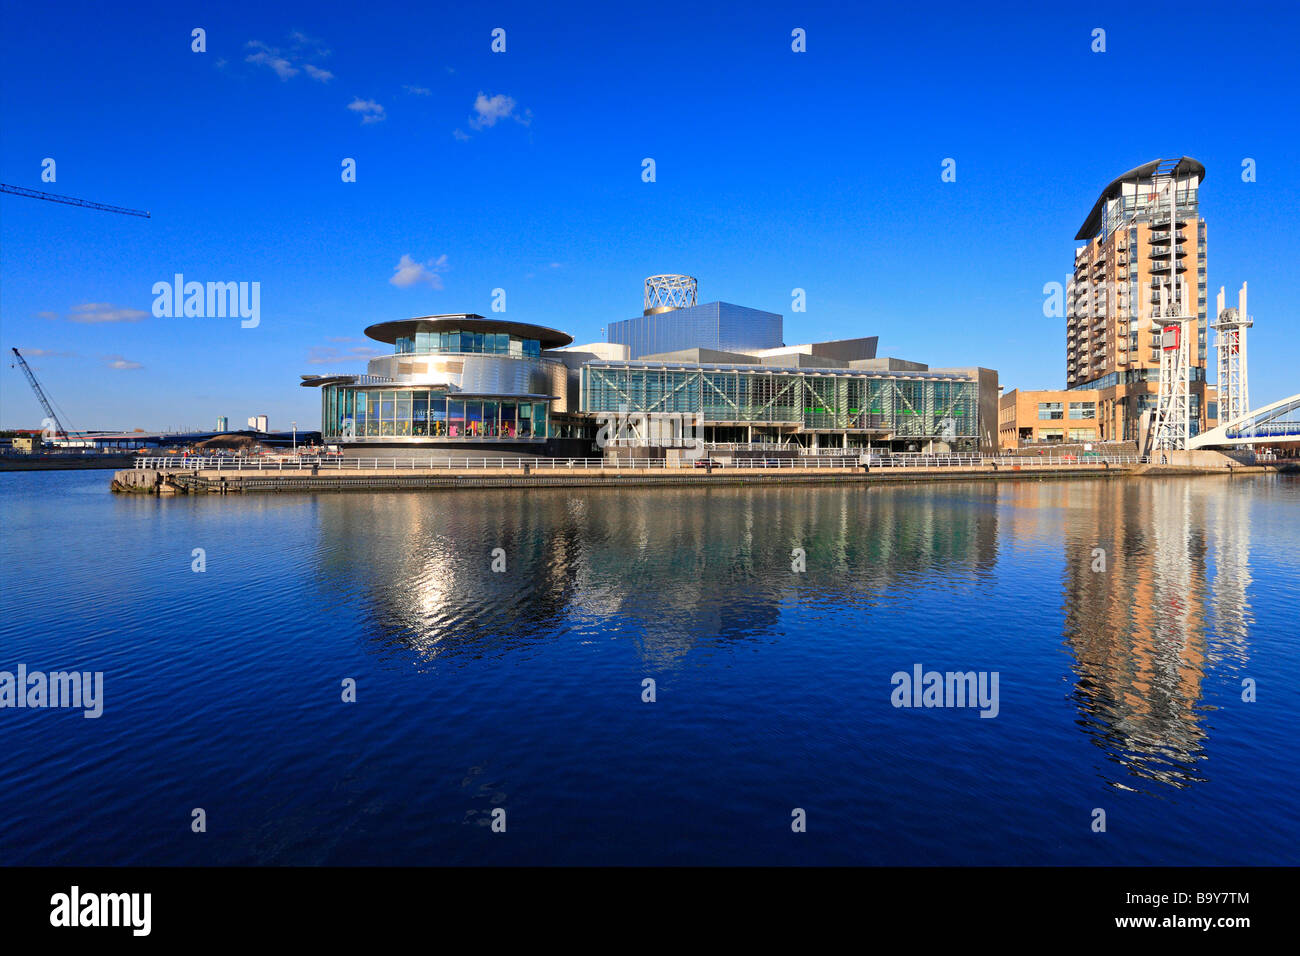 The Lowry Centre, Salford Quays, Manchester, Lancashire, England, UK. - Stock Image